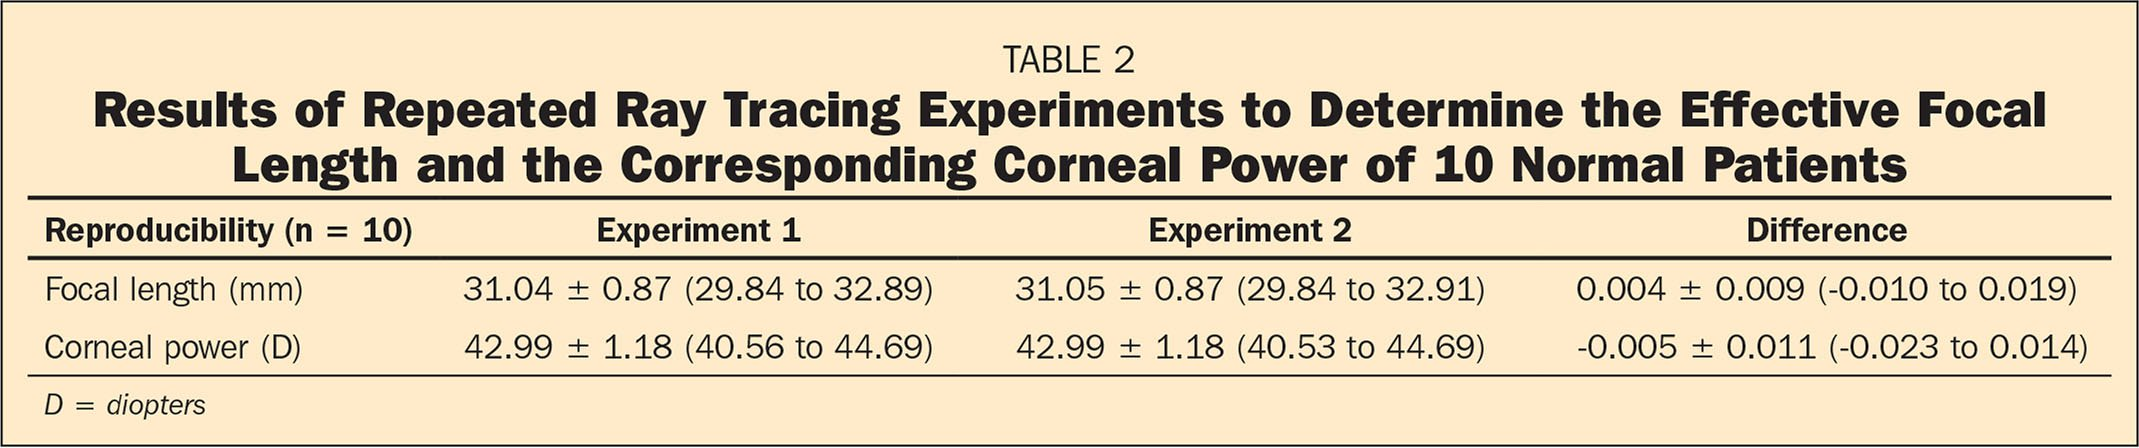 Results of Repeated Ray Tracing Experiments to Determine the Effective Focal Length and the Corresponding Corneal Power of 10 Normal Patients